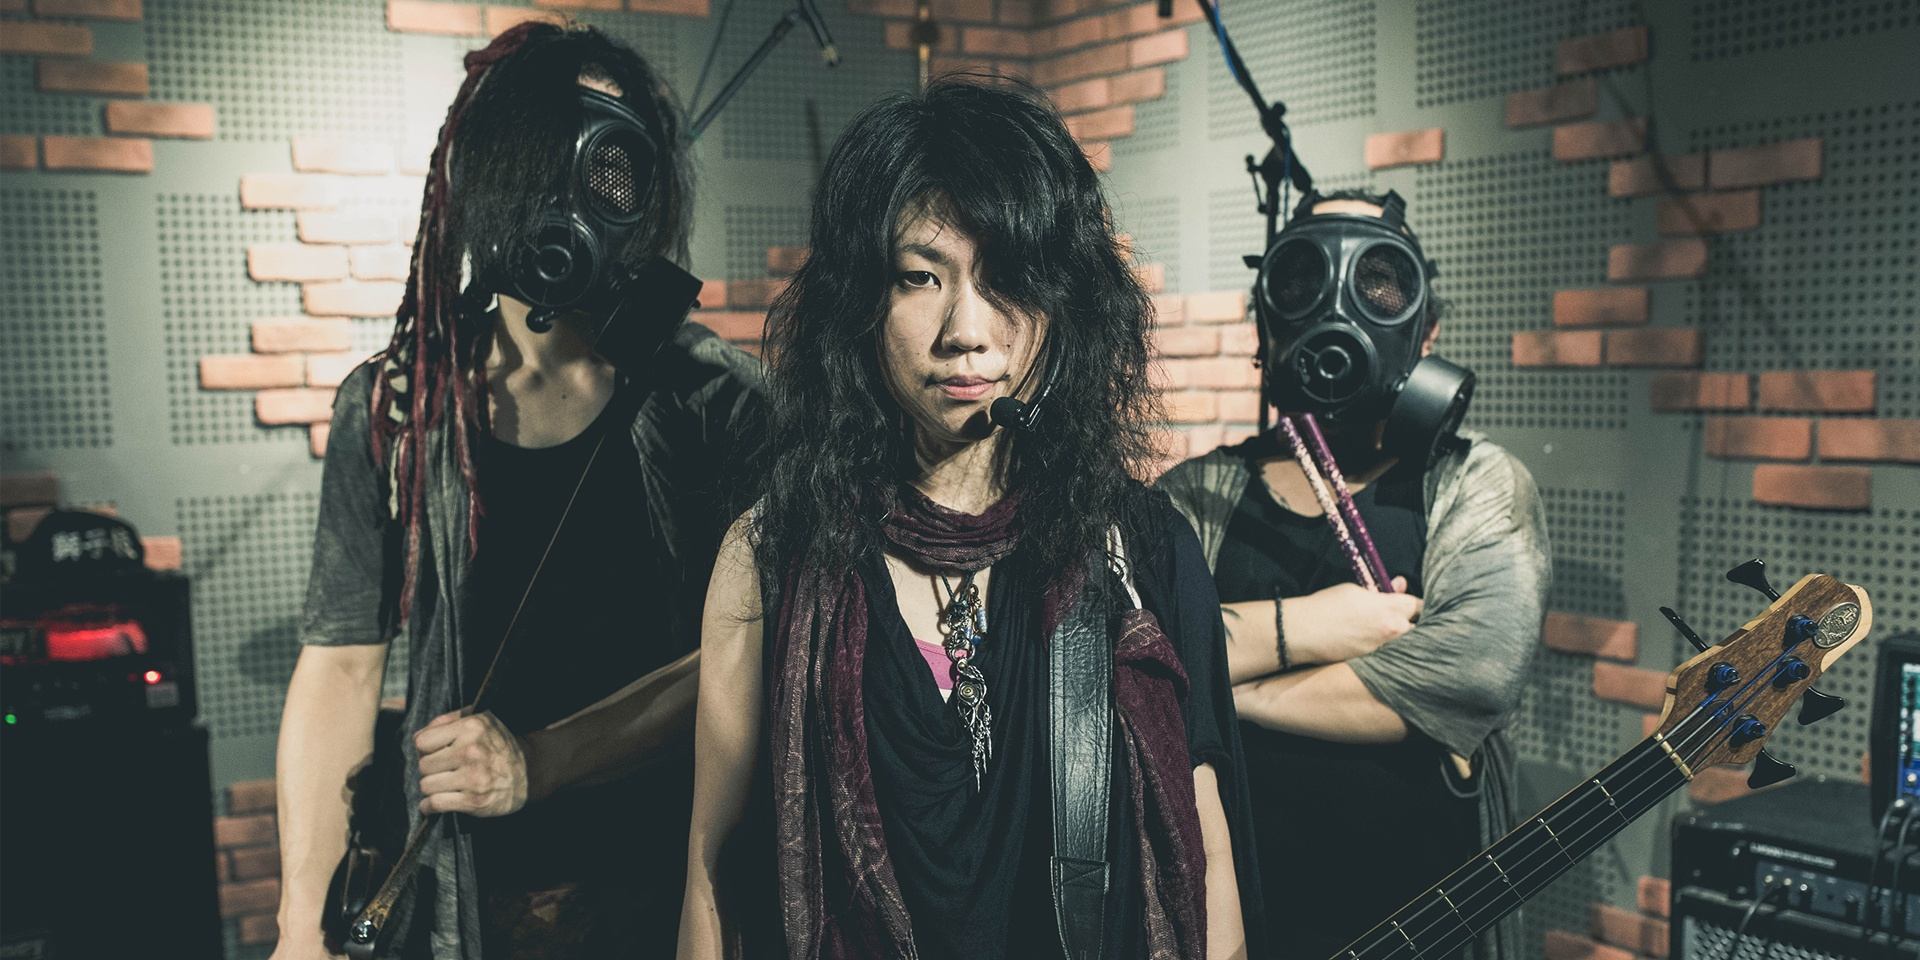 WATCH: Unclose perform 'Kyome' and 'Gunjyo' in The Music Parlour for Bandwagon Presents